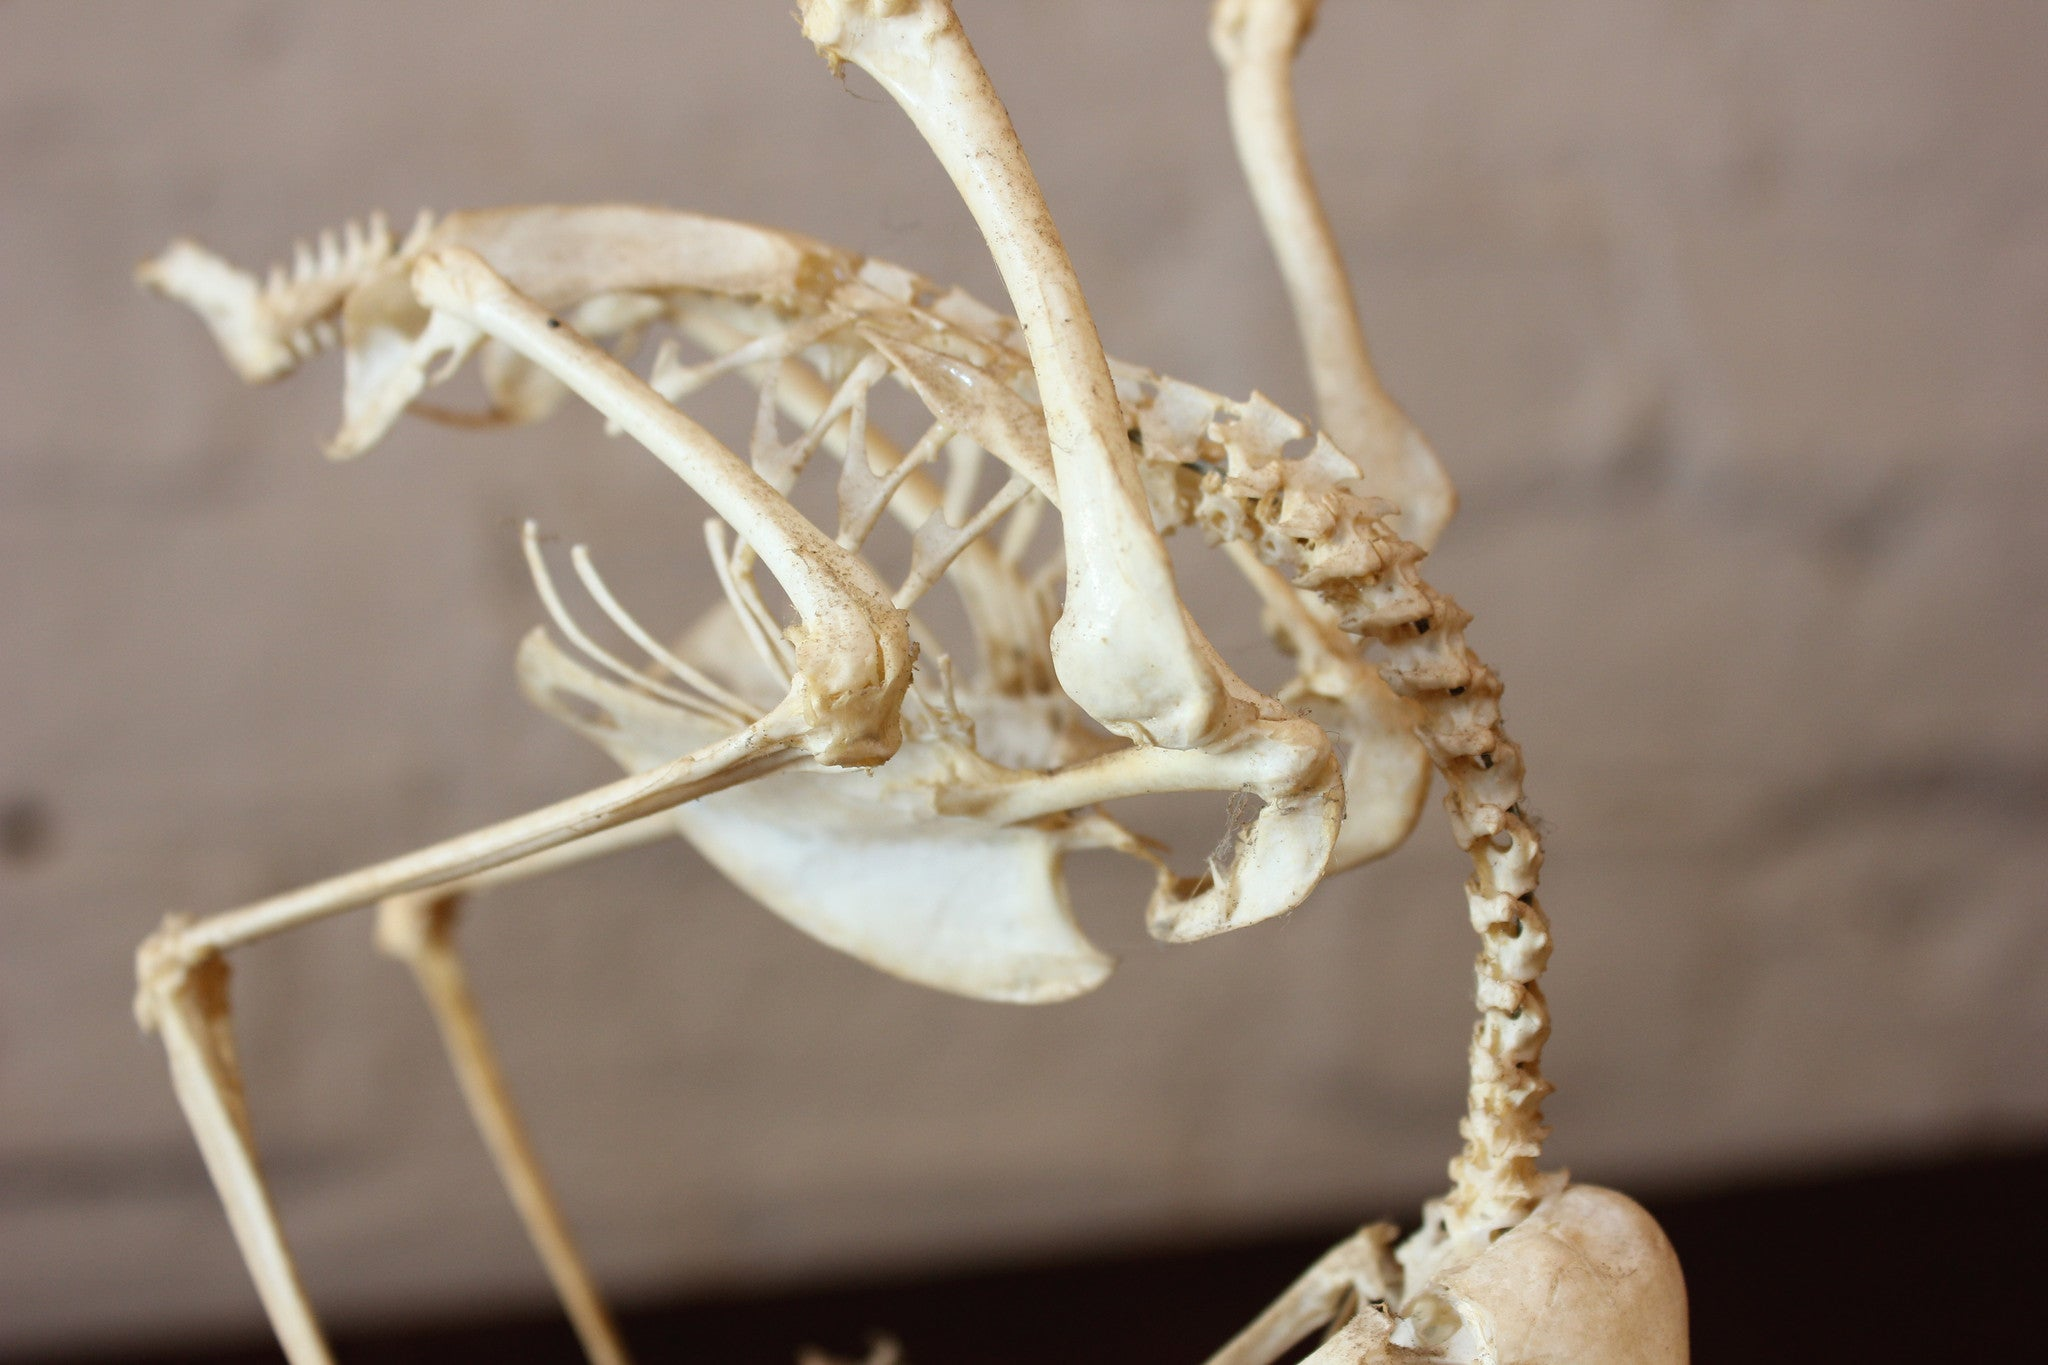 A Fascinating Natural History Articulated Anatomical Skeleton of a Sparrowhawk Preying on a Sparrow